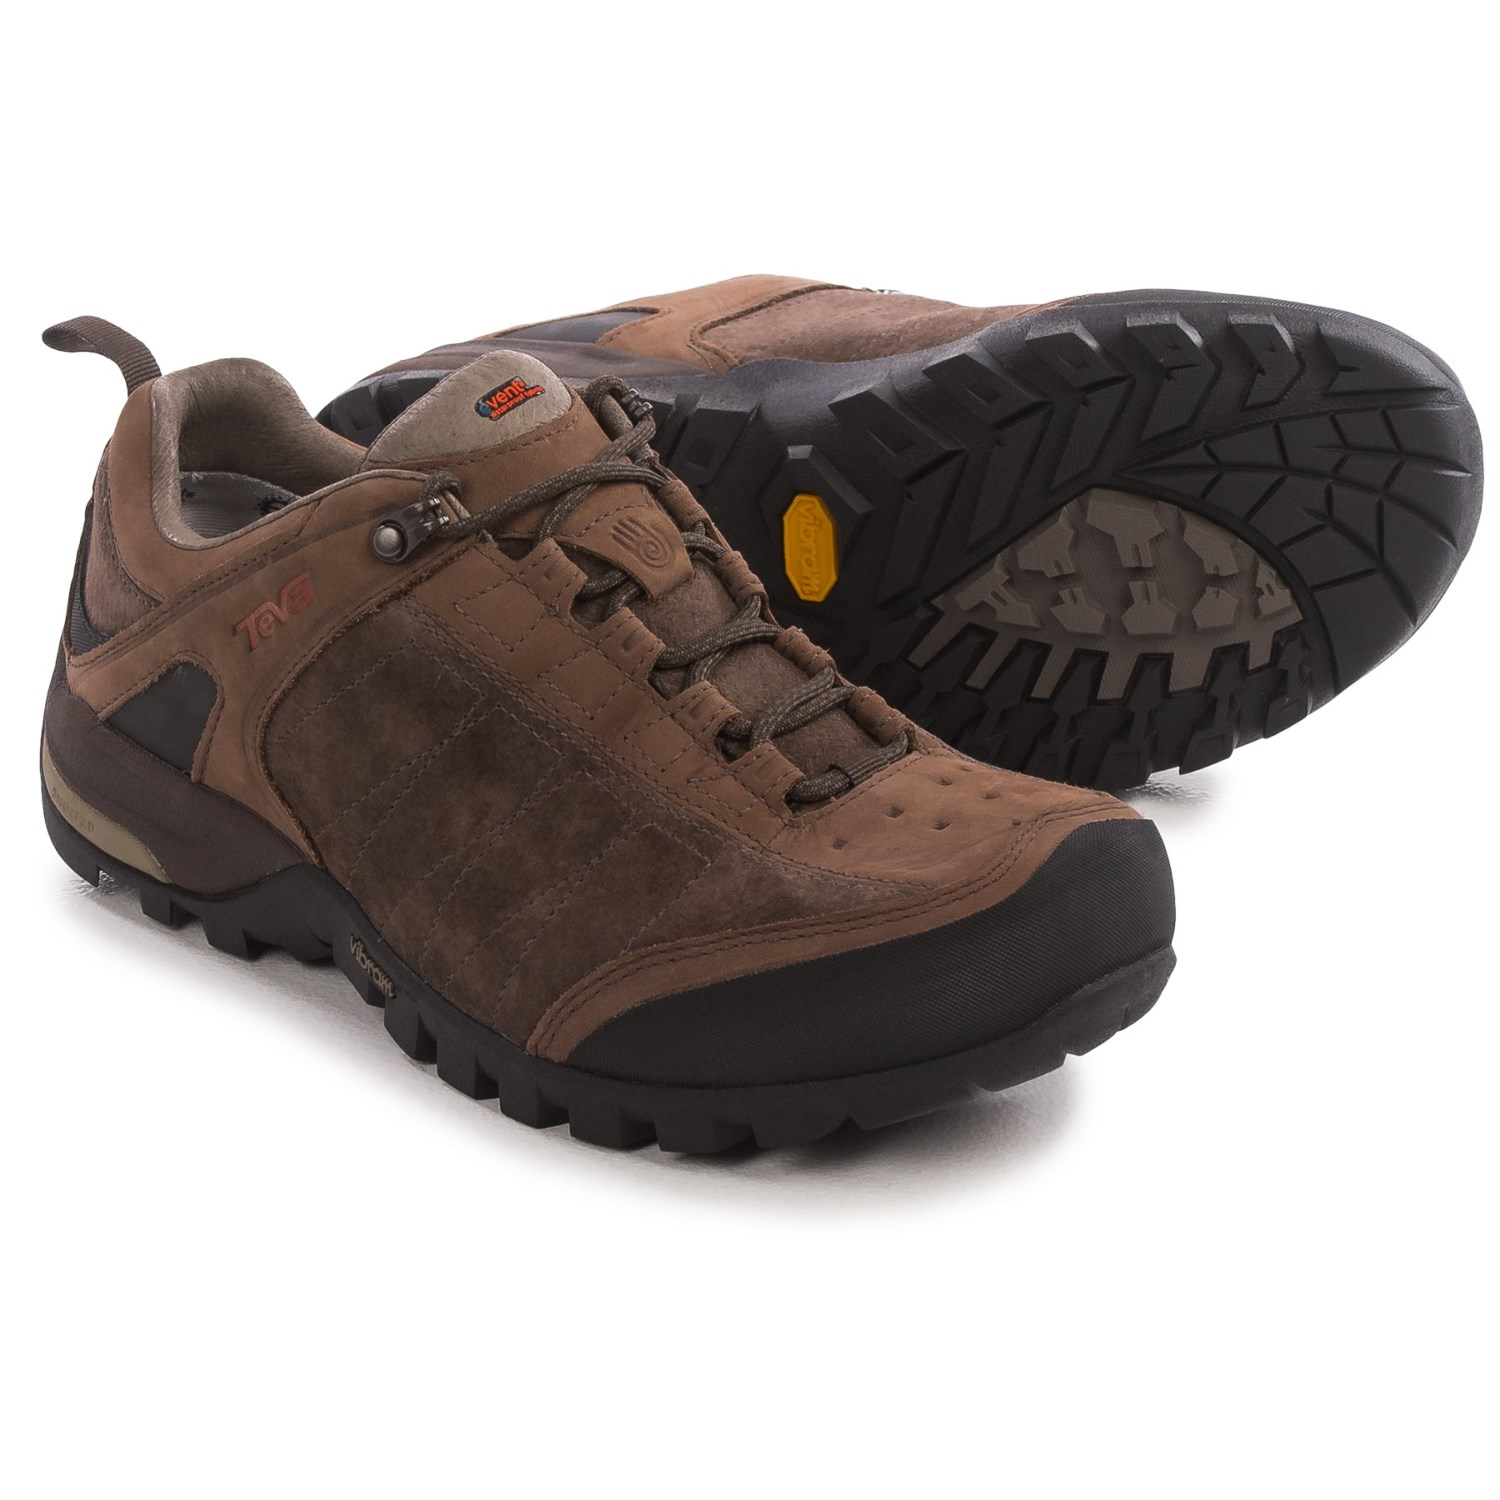 Teva Riva Event Suede Hiking Shoes